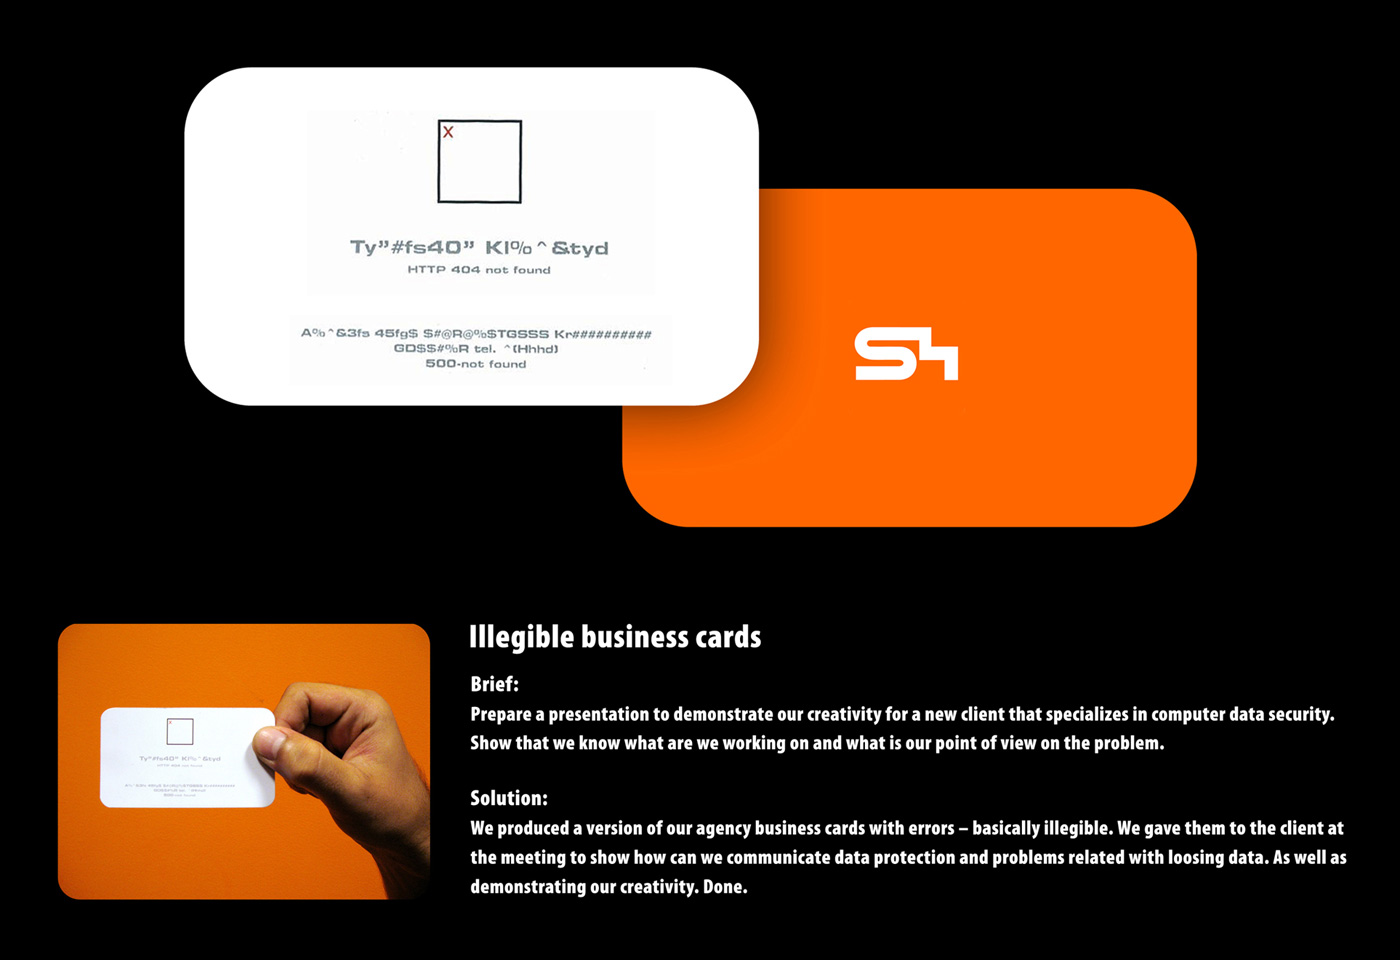 S4 Direct Advert By S4: Illegible business cards | Ads of the World™